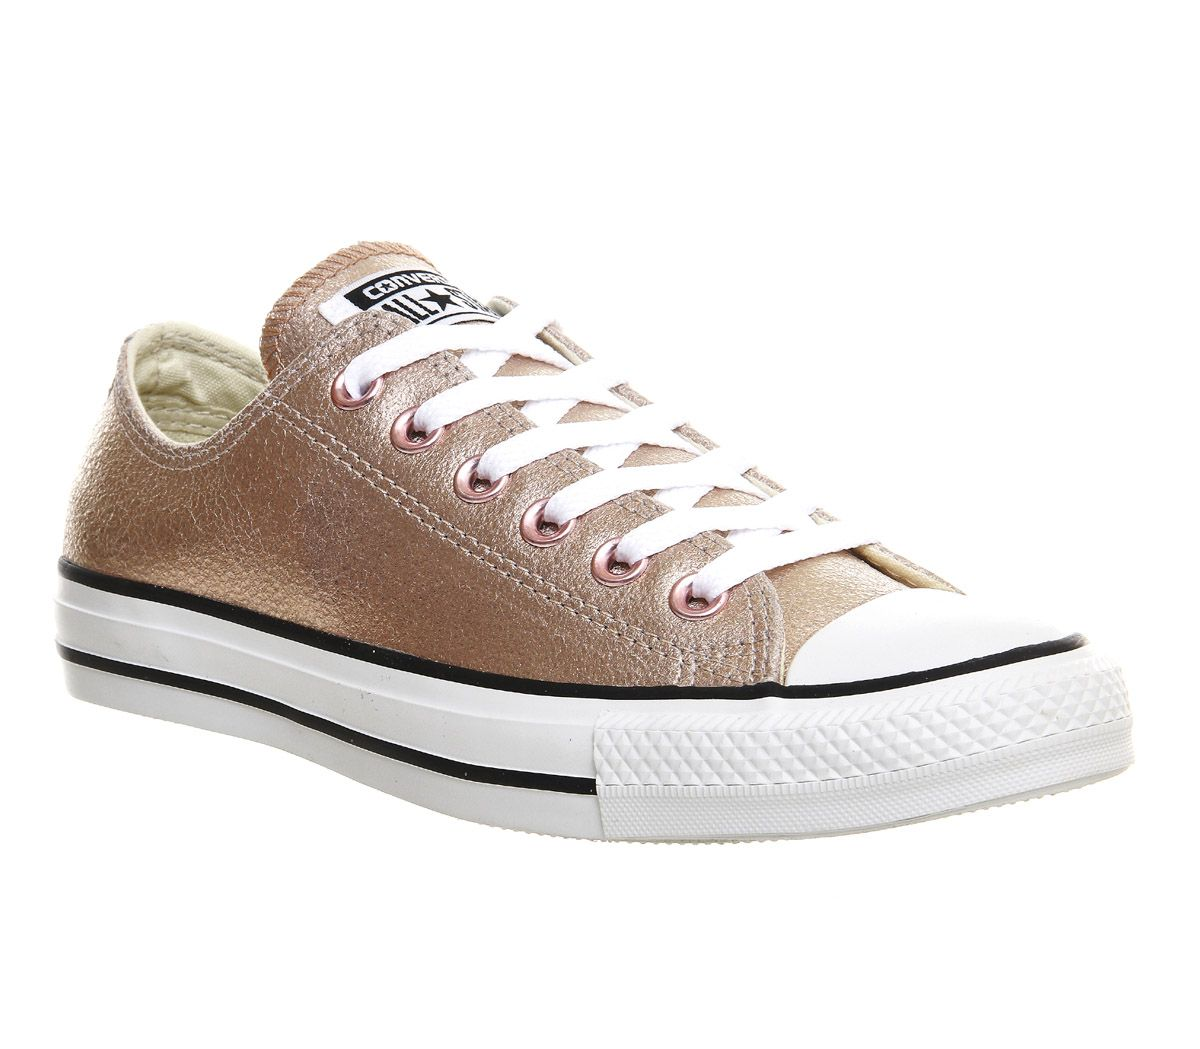 sports shoes 0f928 6c914 Converse Allstar Low Lthr Rose Gold Exclusive - Unisex Sports